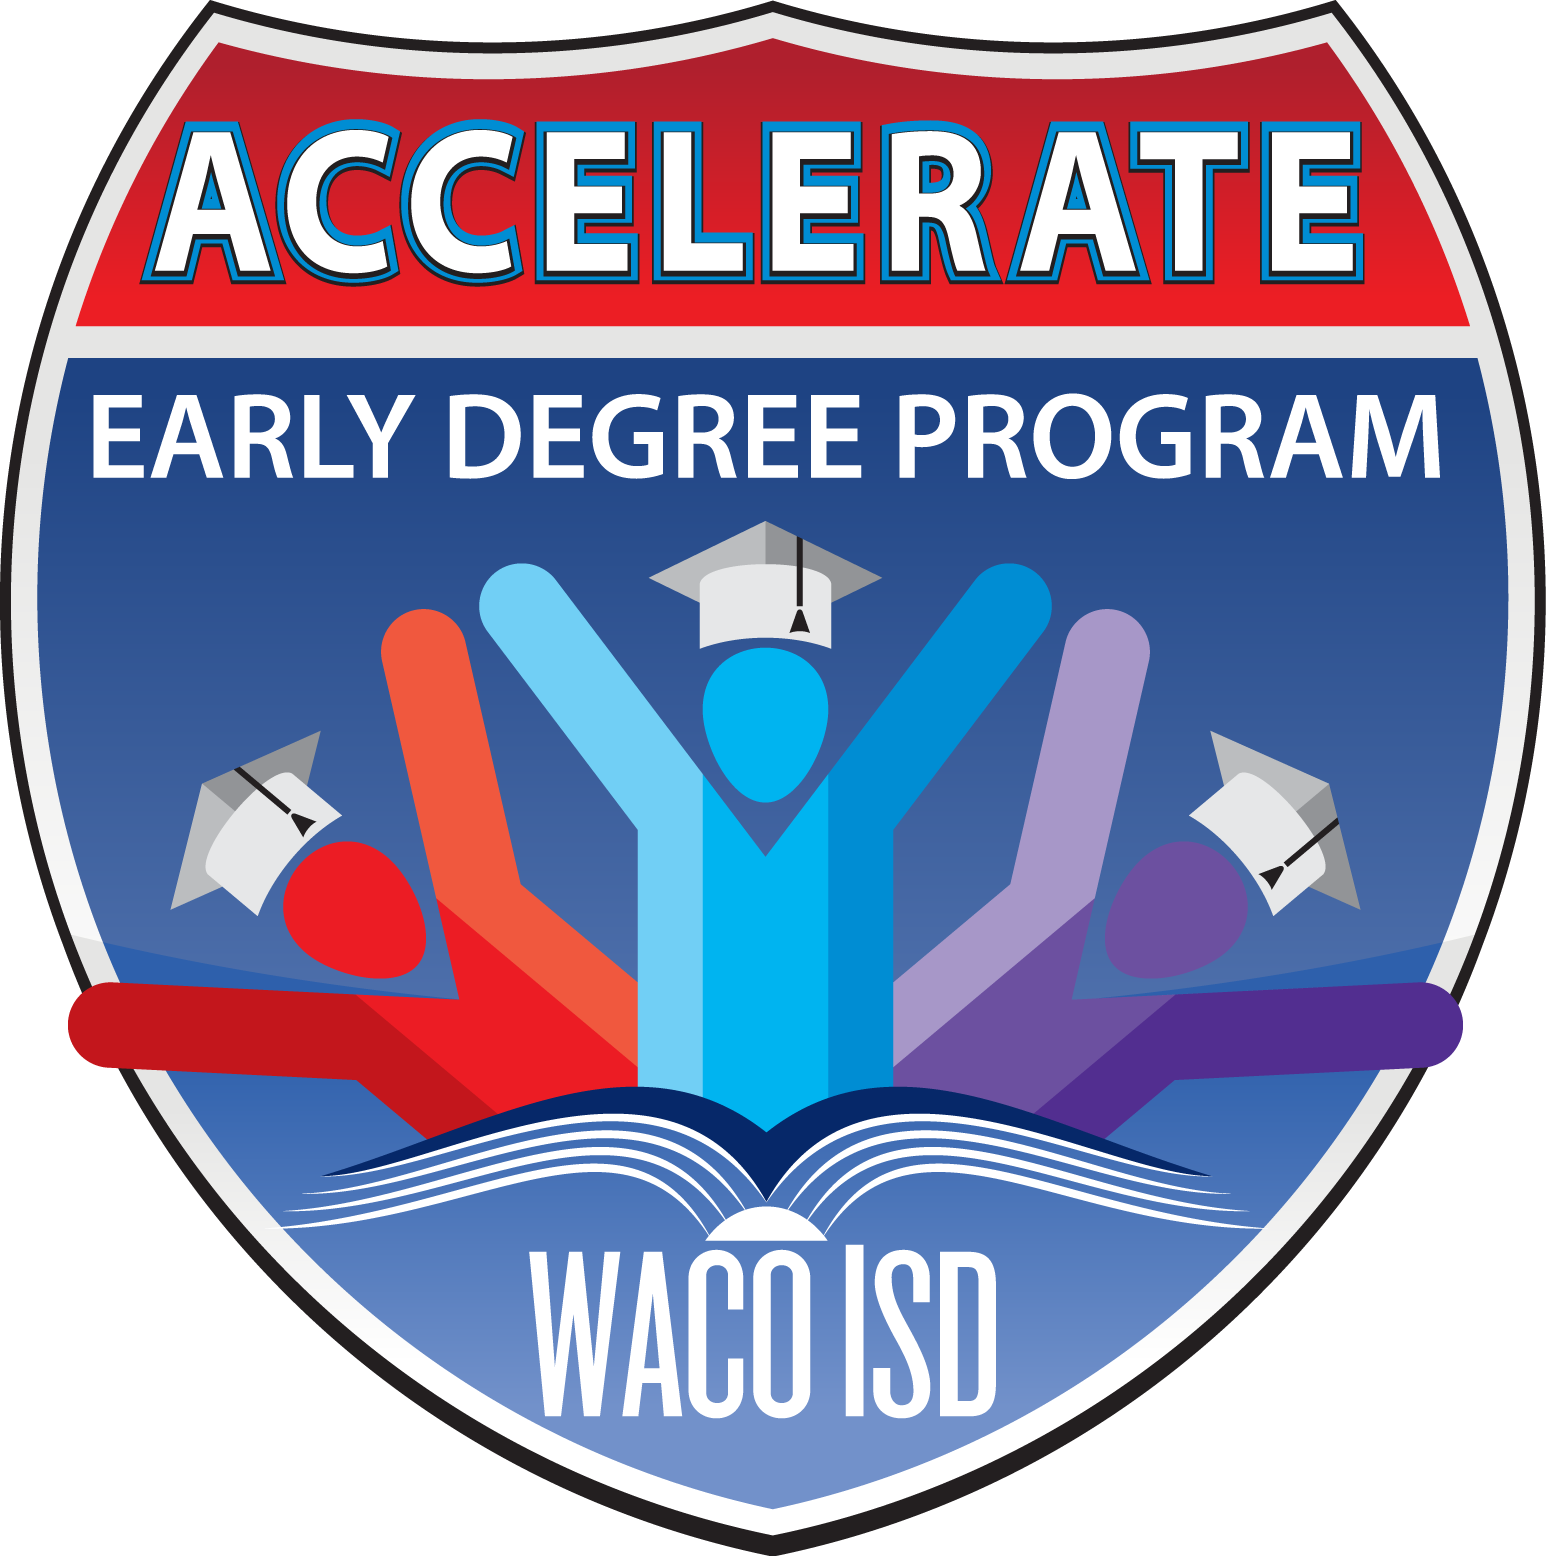 text: Accelerate Program